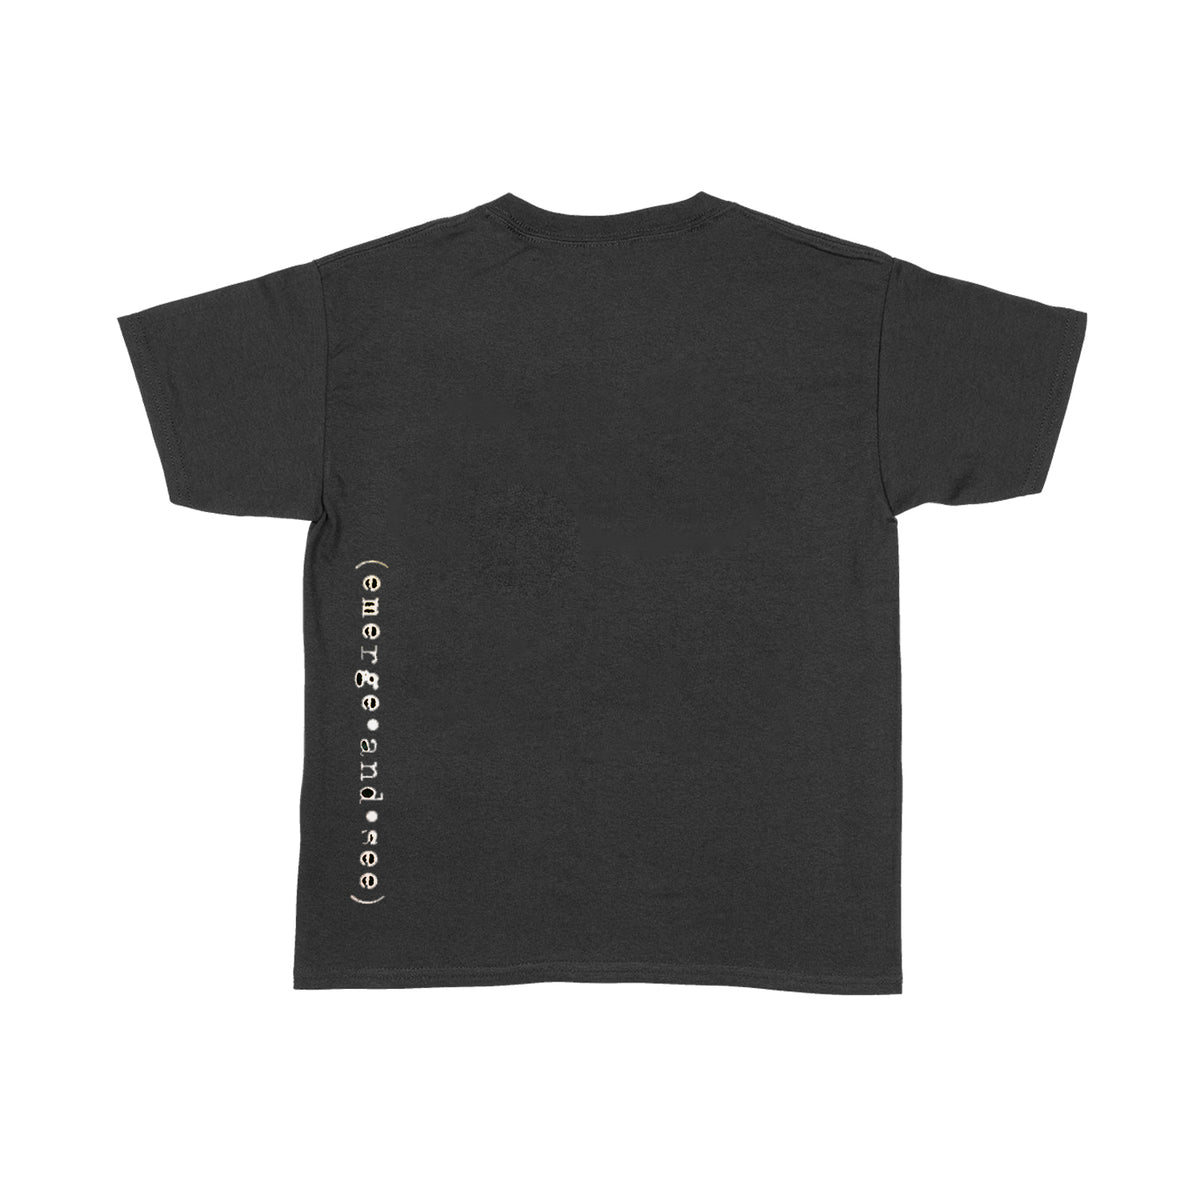 Innervision Black T-Shirt + Download